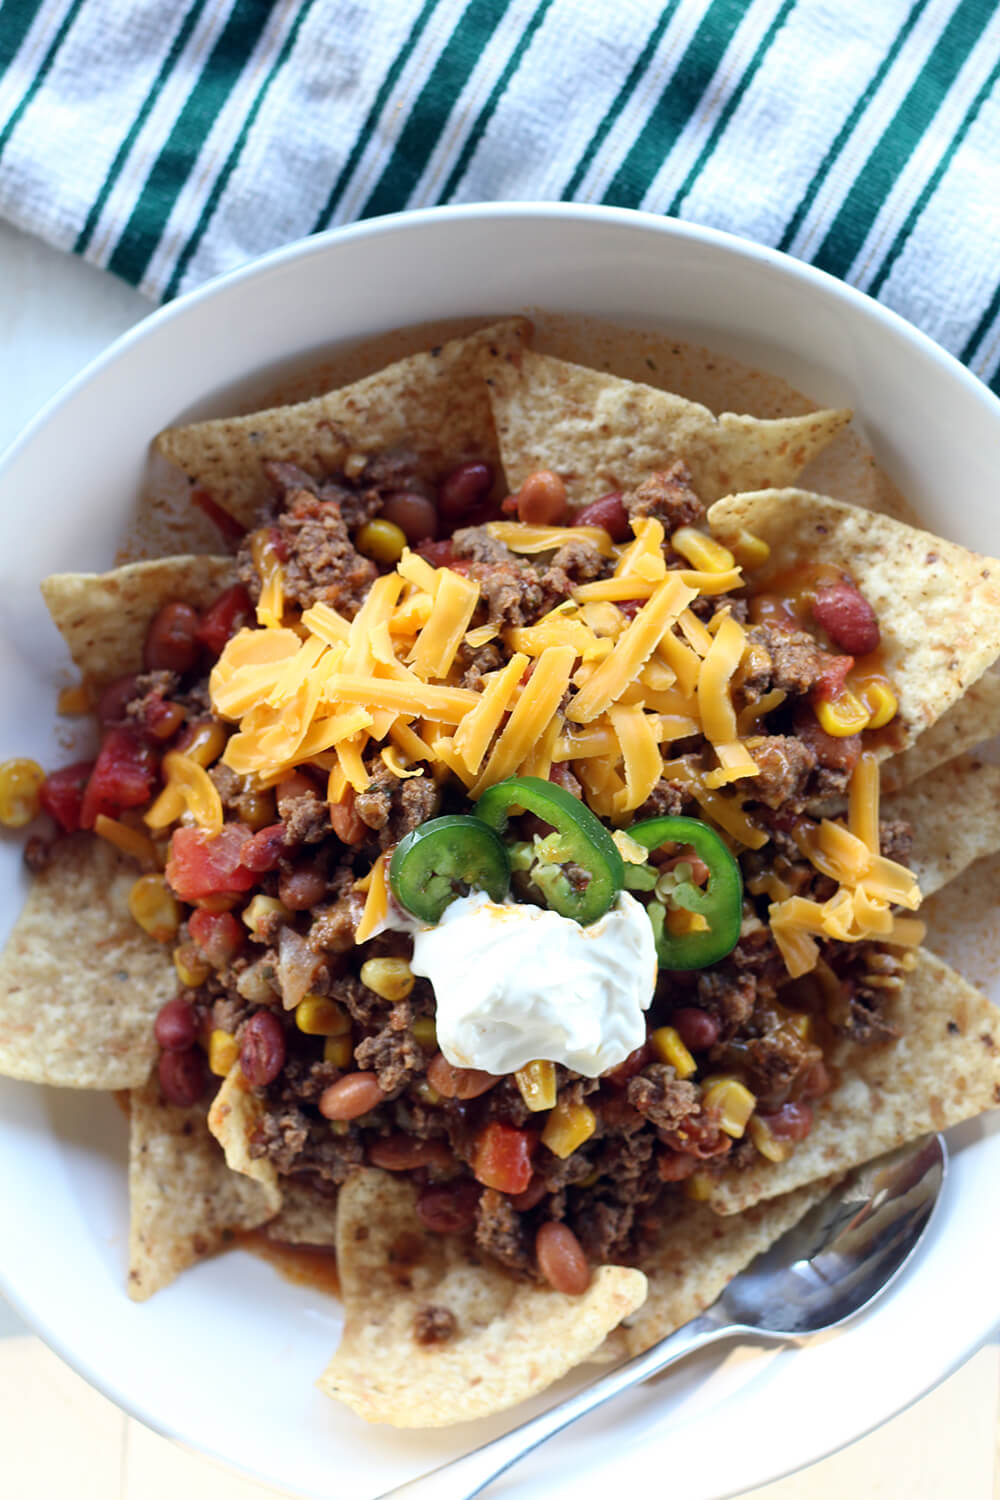 overhead picture of Tex Mex style ground beef mixture on tortilla chips in a white bowl